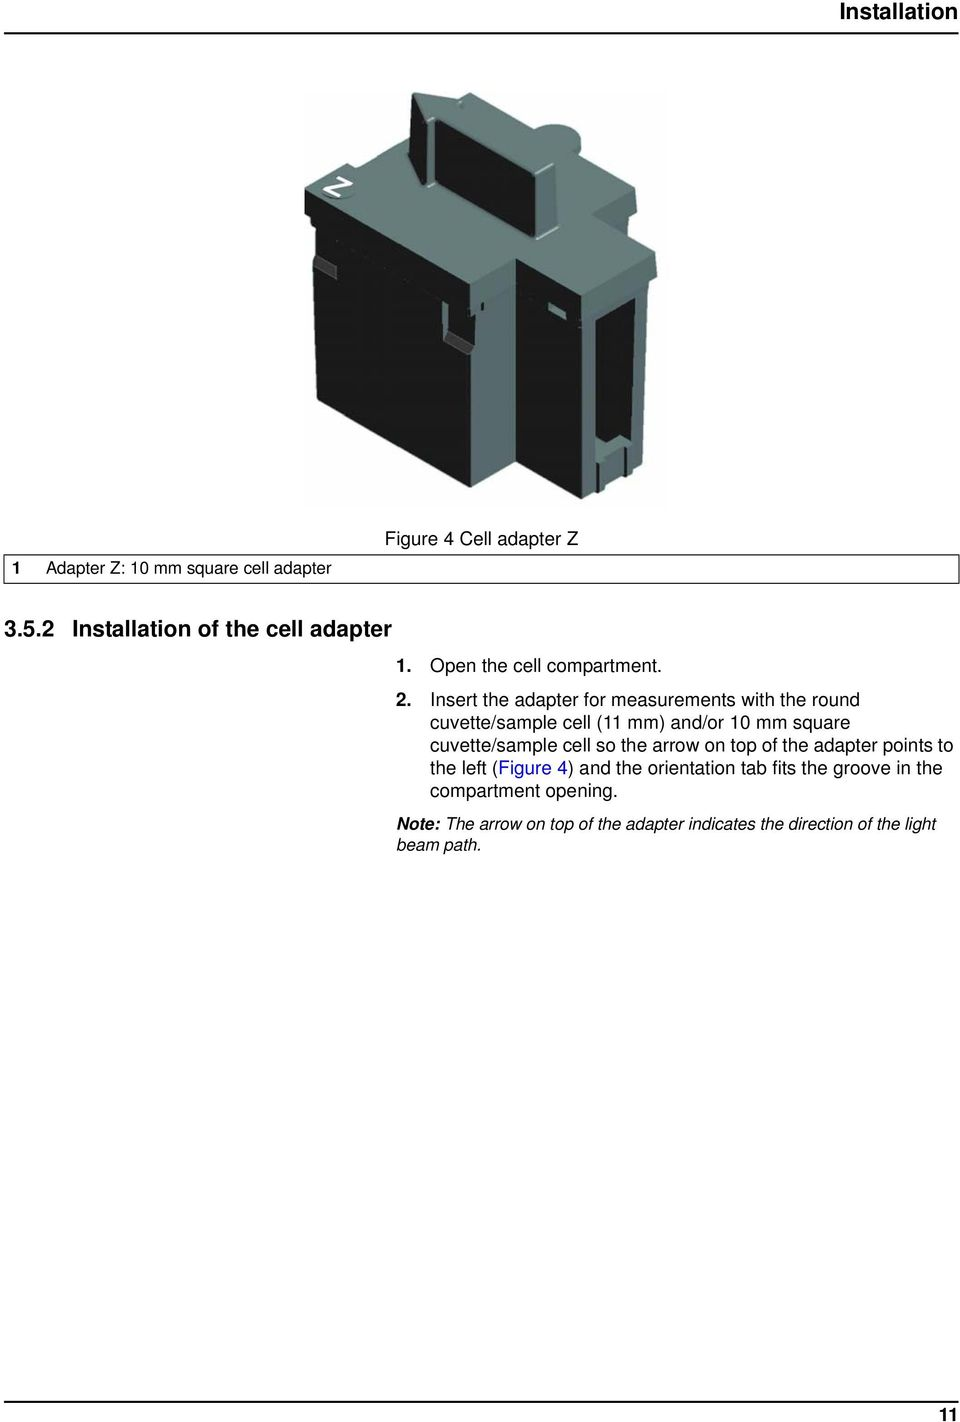 Insert the adapter for measurements with the round cuvette/sample cell (11 mm) and/or 10 mm square cuvette/sample cell so